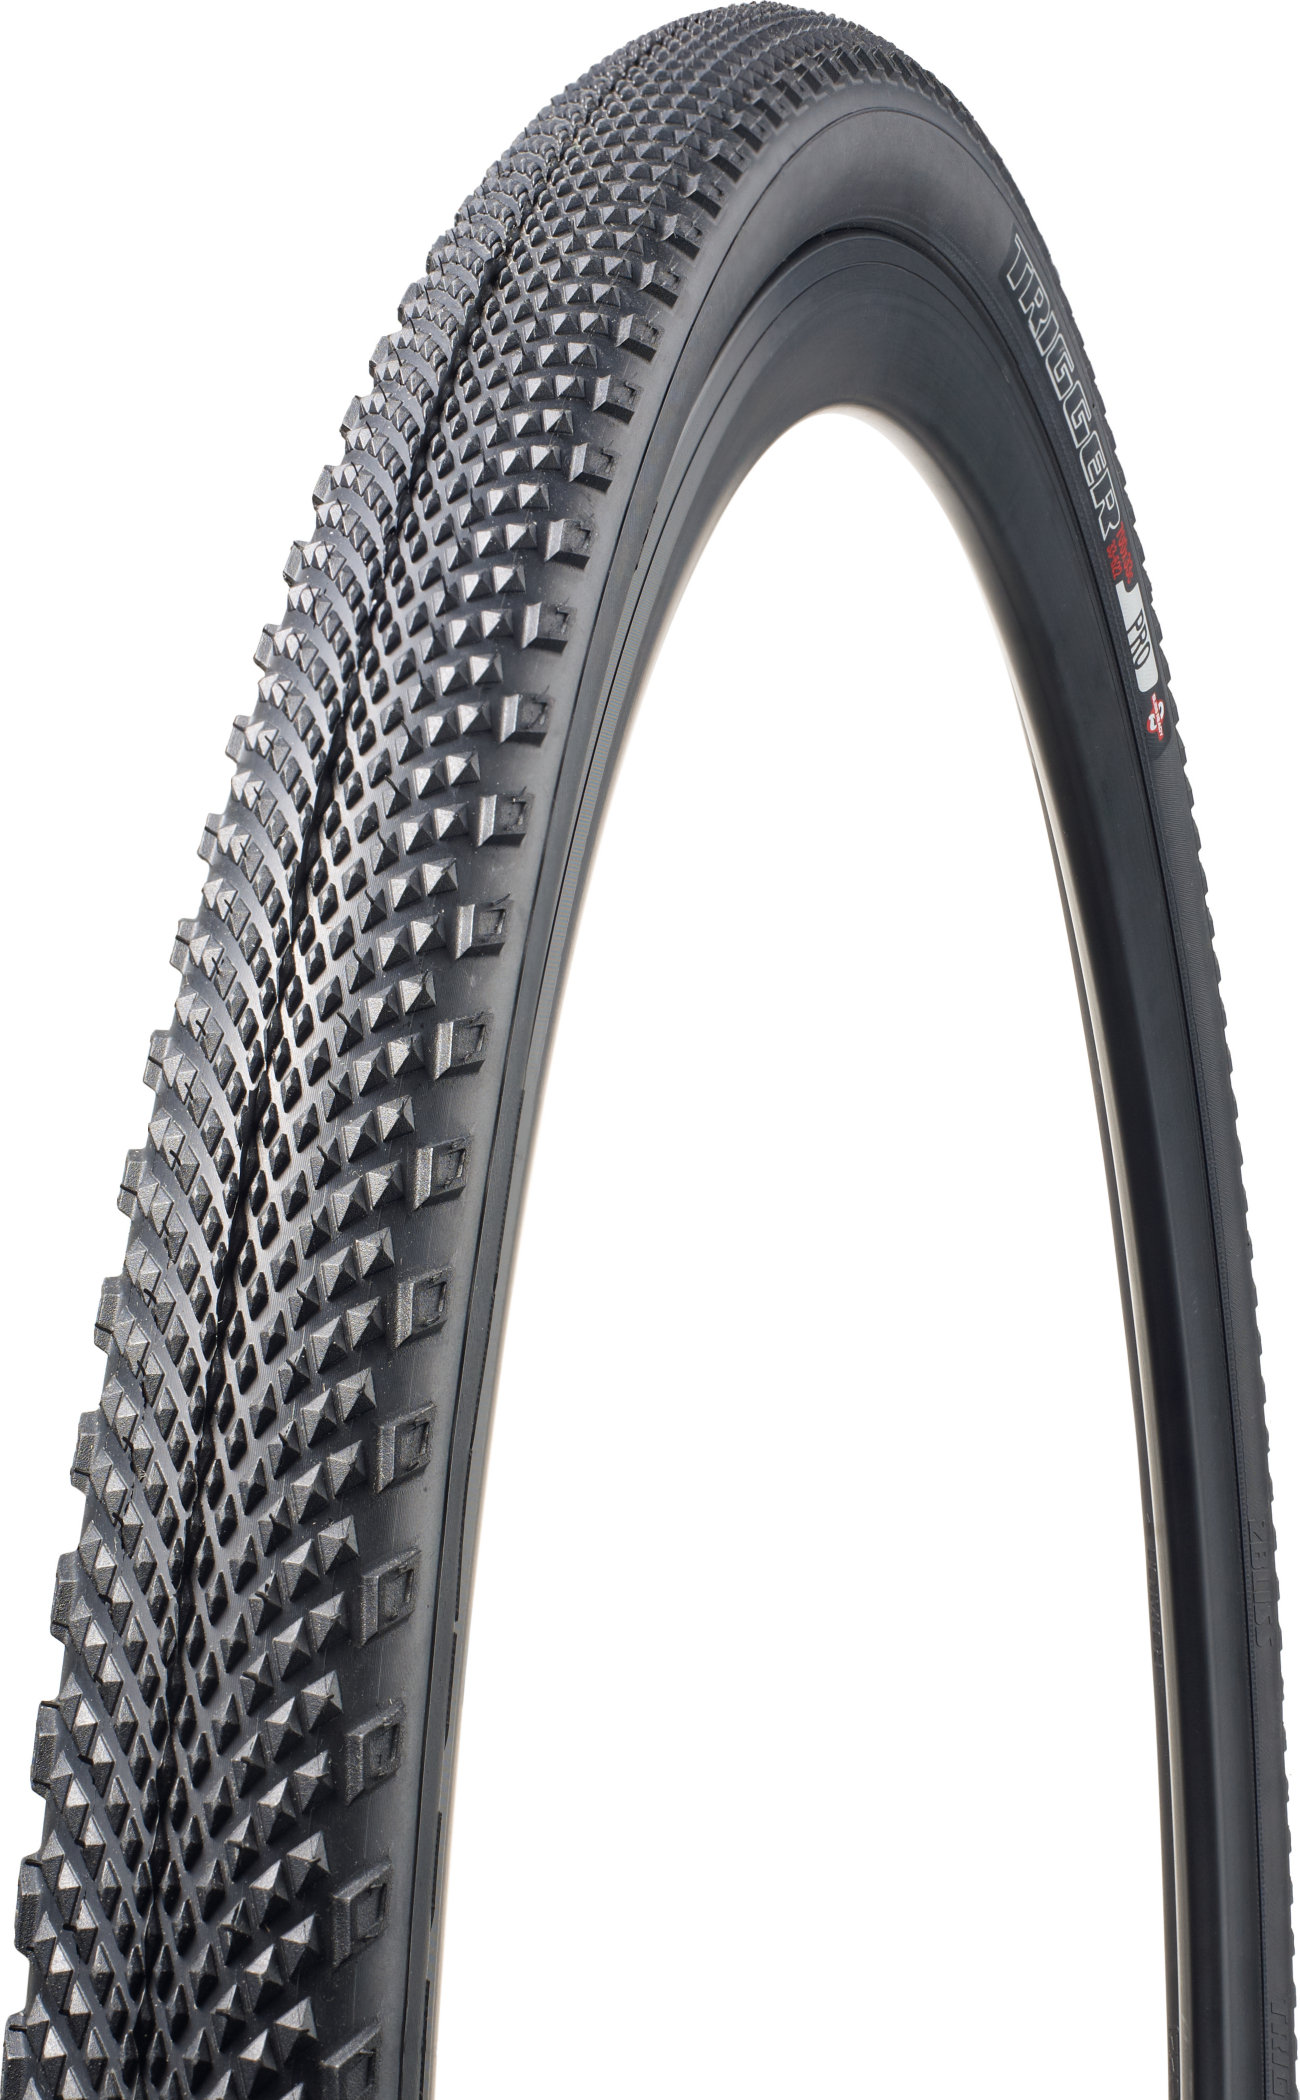 SPECIALIZED TRIGGER SPORT TIRE 700X42C - SPECIALIZED TRIGGER SPORT TIRE 700X42C